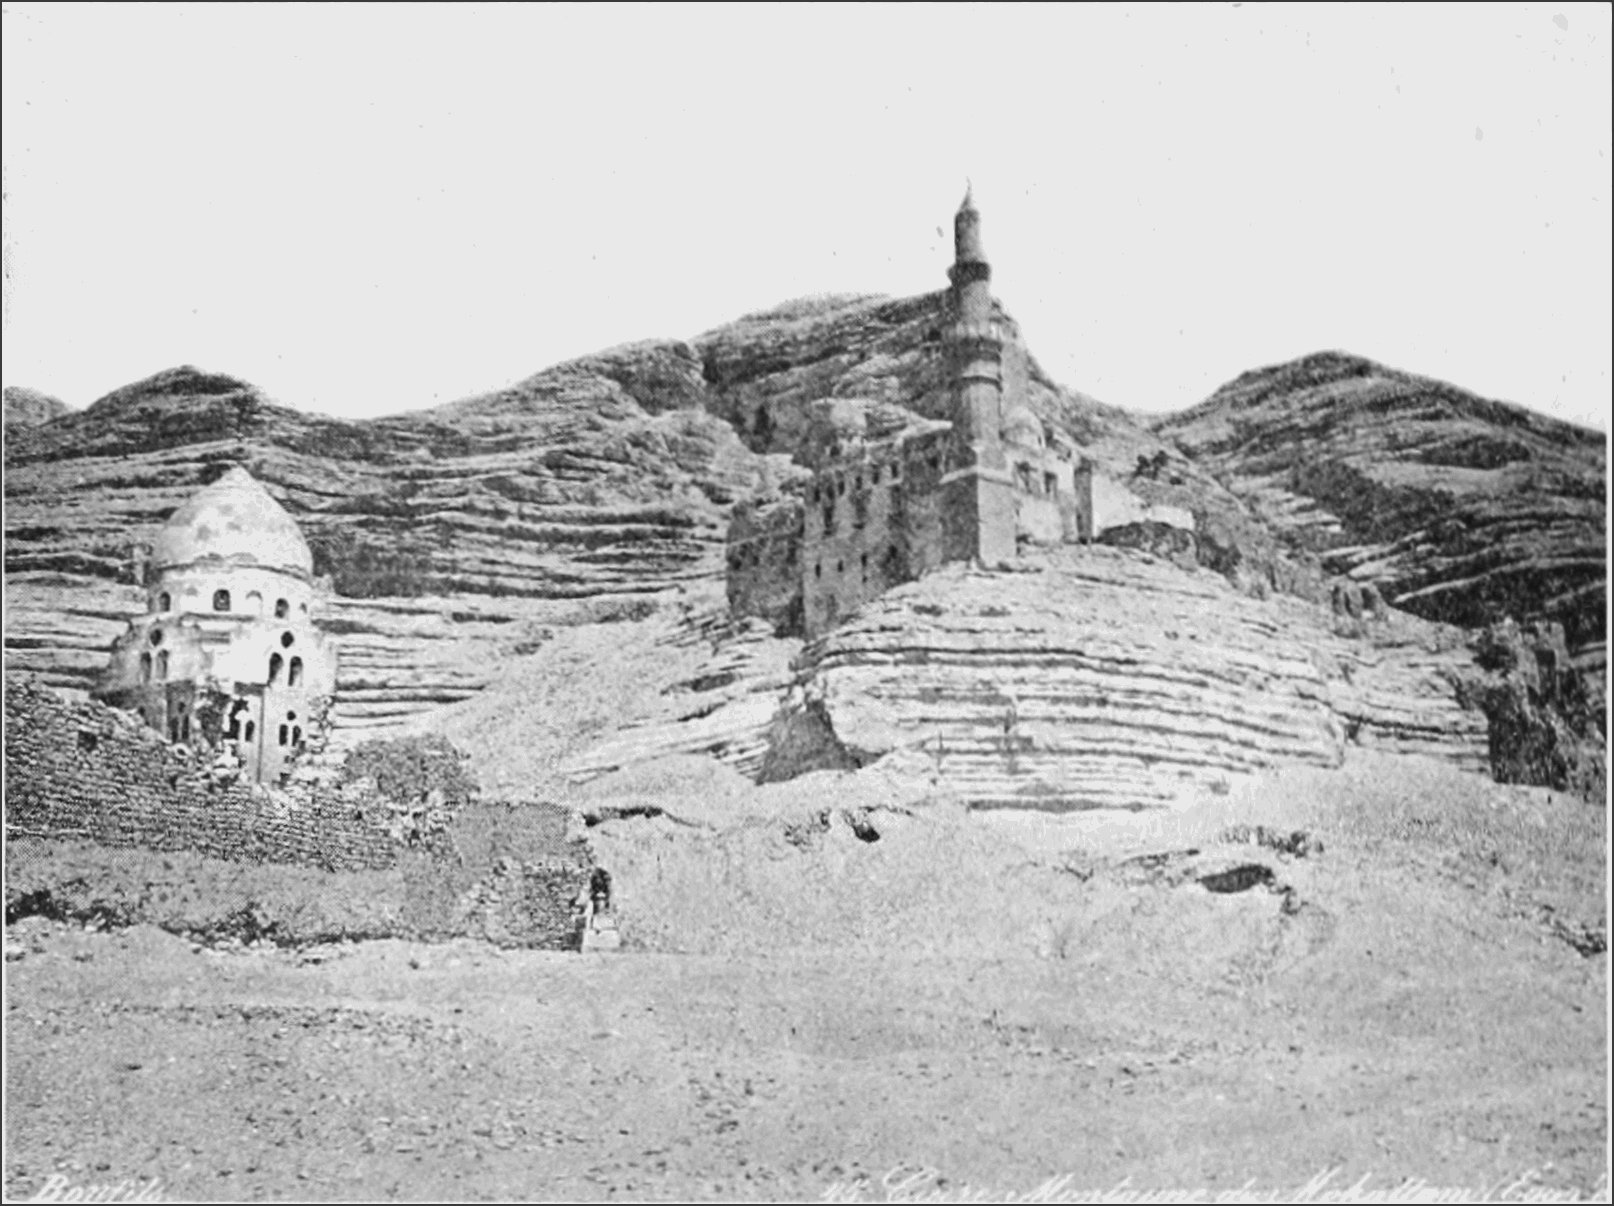 PSM V82 D473 Wind engraved cliffs of the mokattam hills near cairo egypt.png